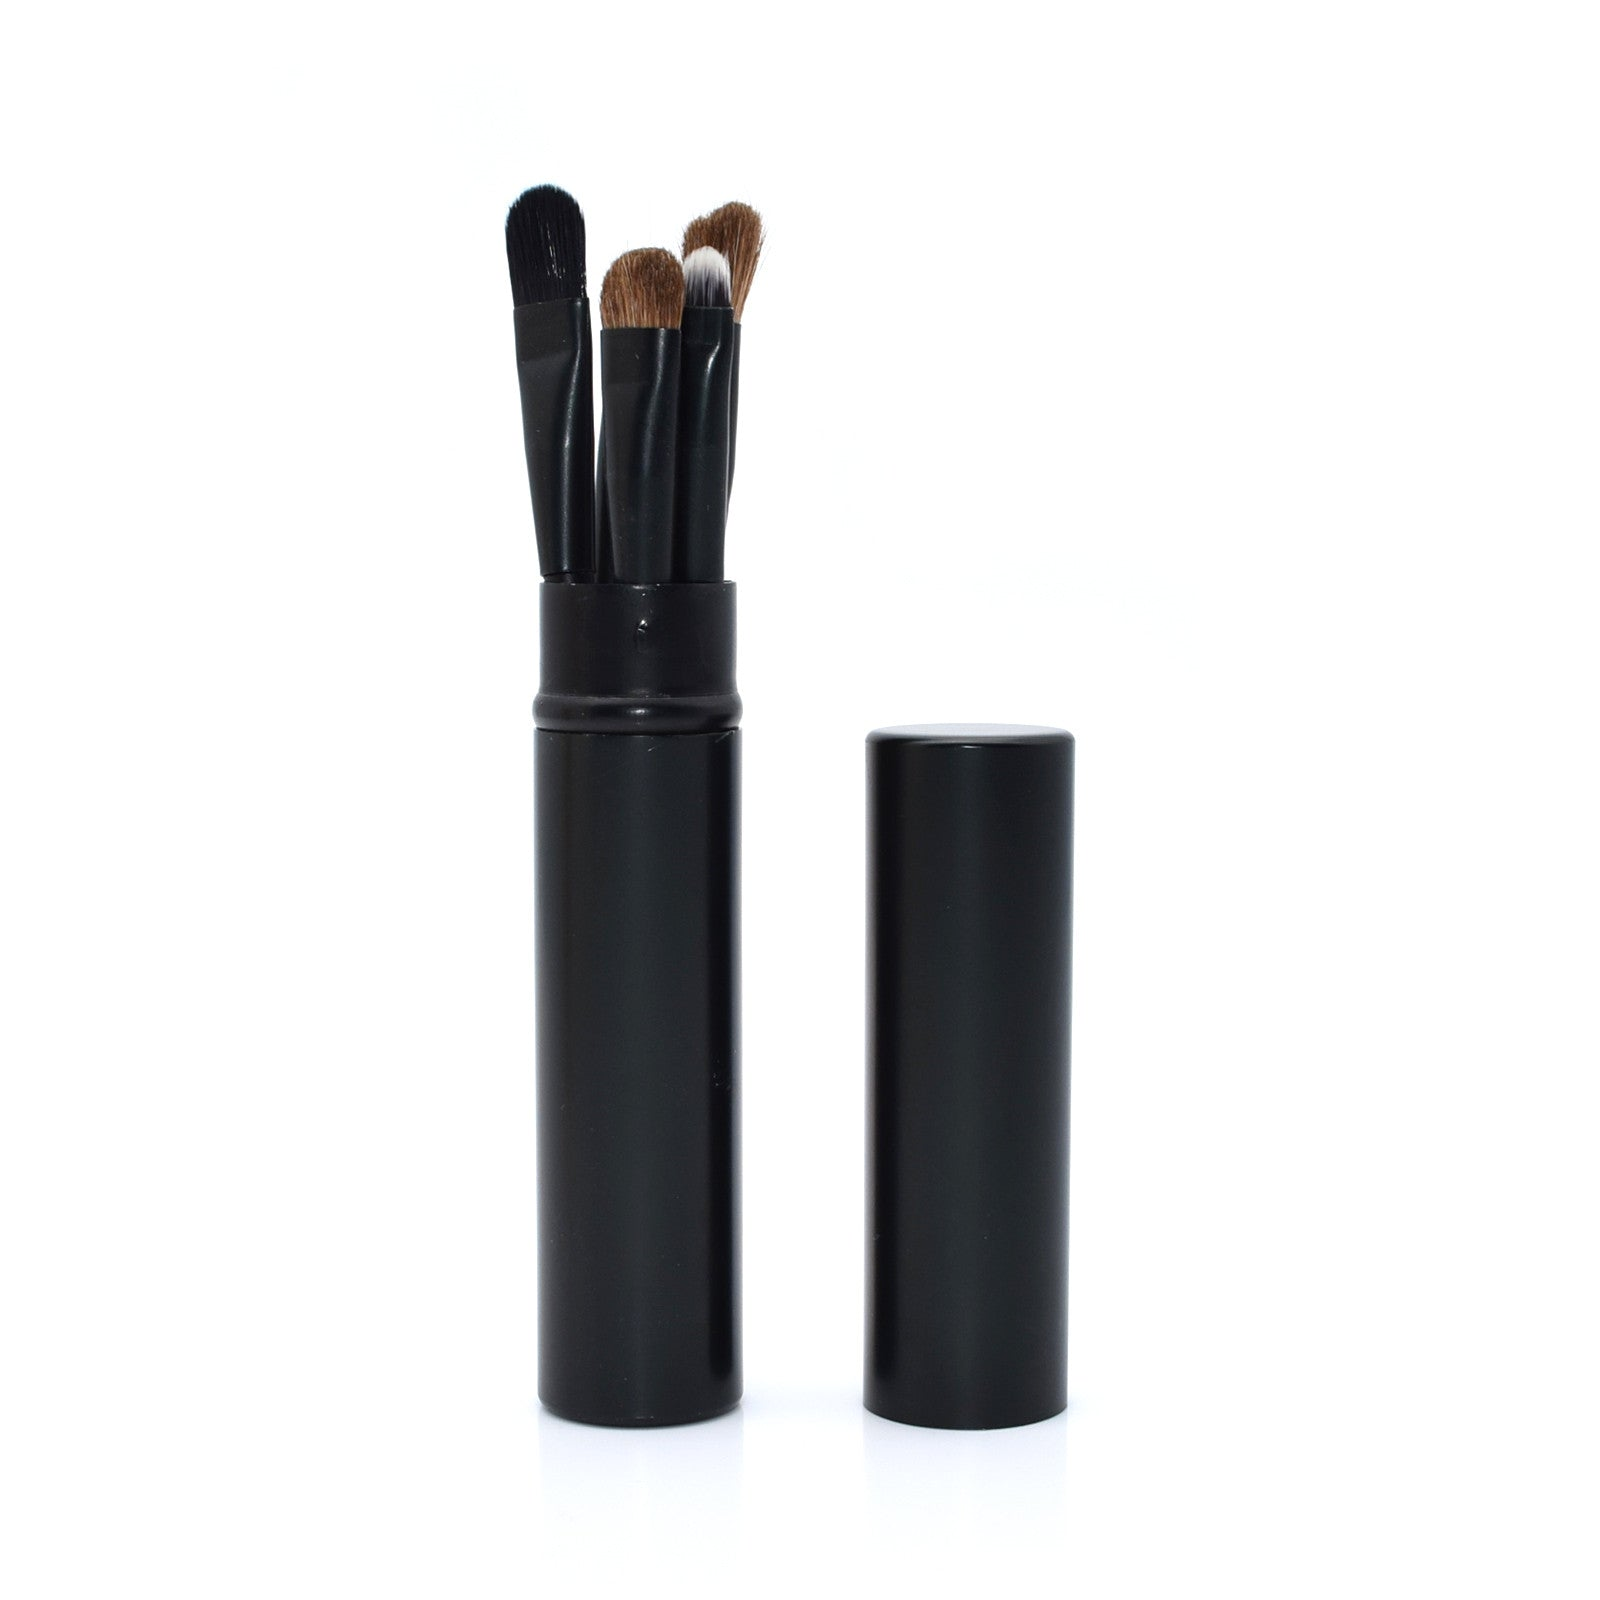 Eye Makeup Brushes Set (5 Pieces) - Dolovemk Beauty